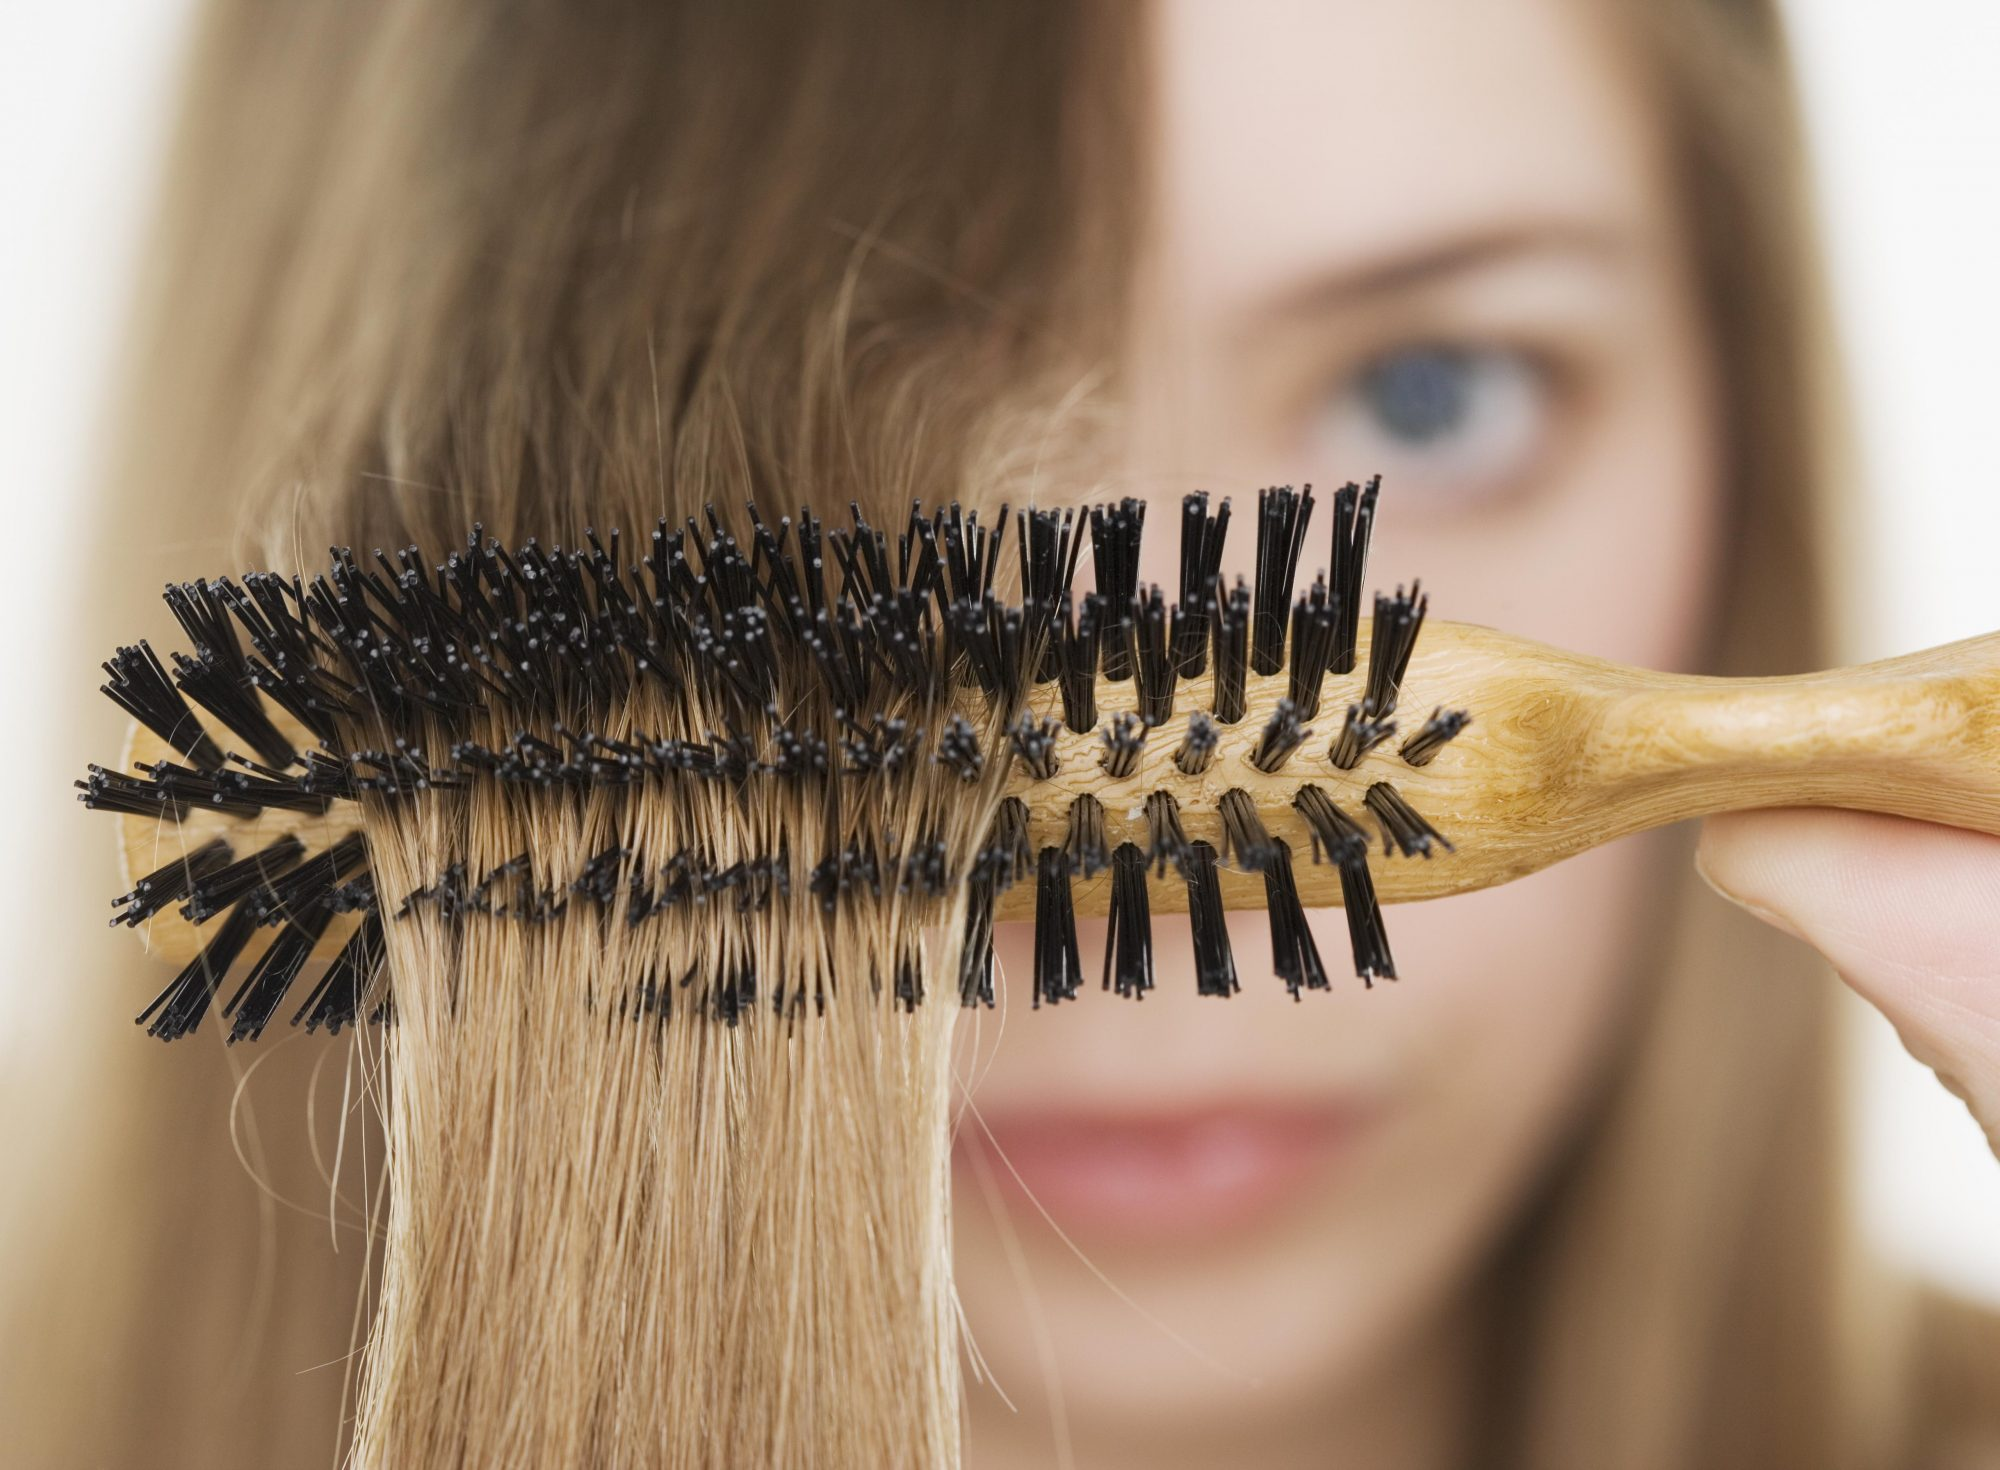 brush-comb-lice-myths